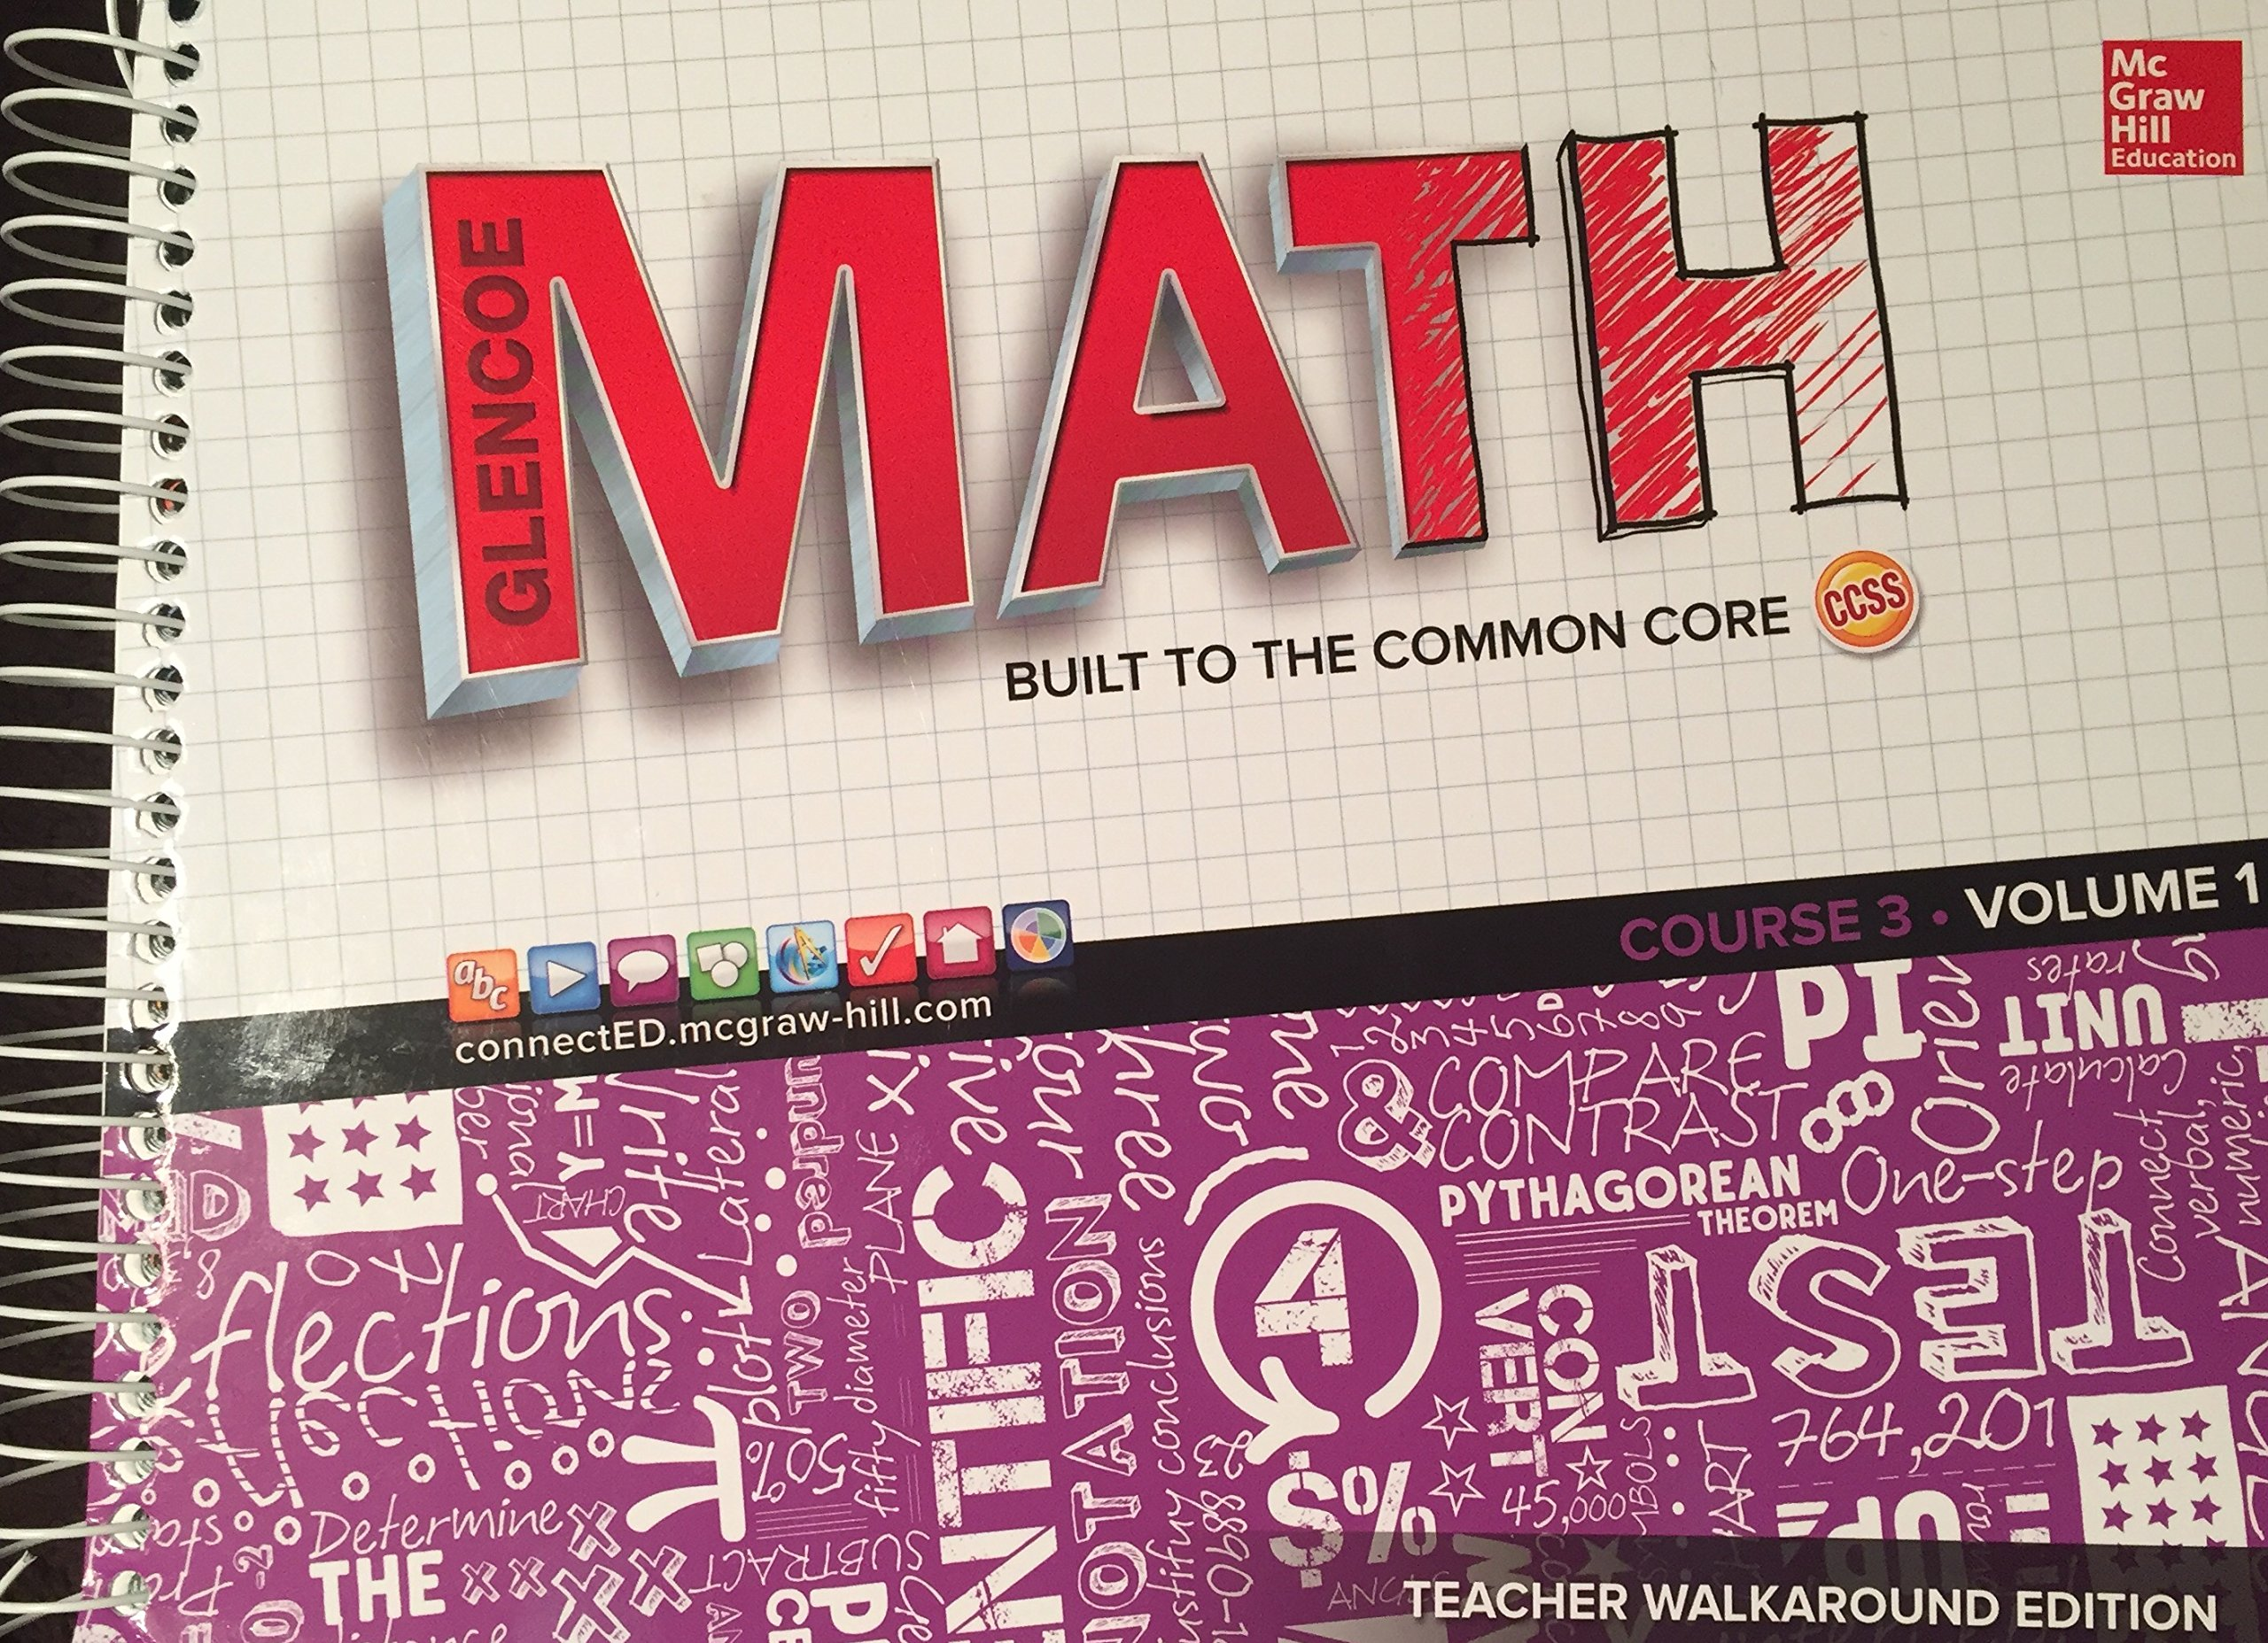 Download Glencoe Math Built to the common core Course 3 Volume 1 Teacher walkaround edition PDF